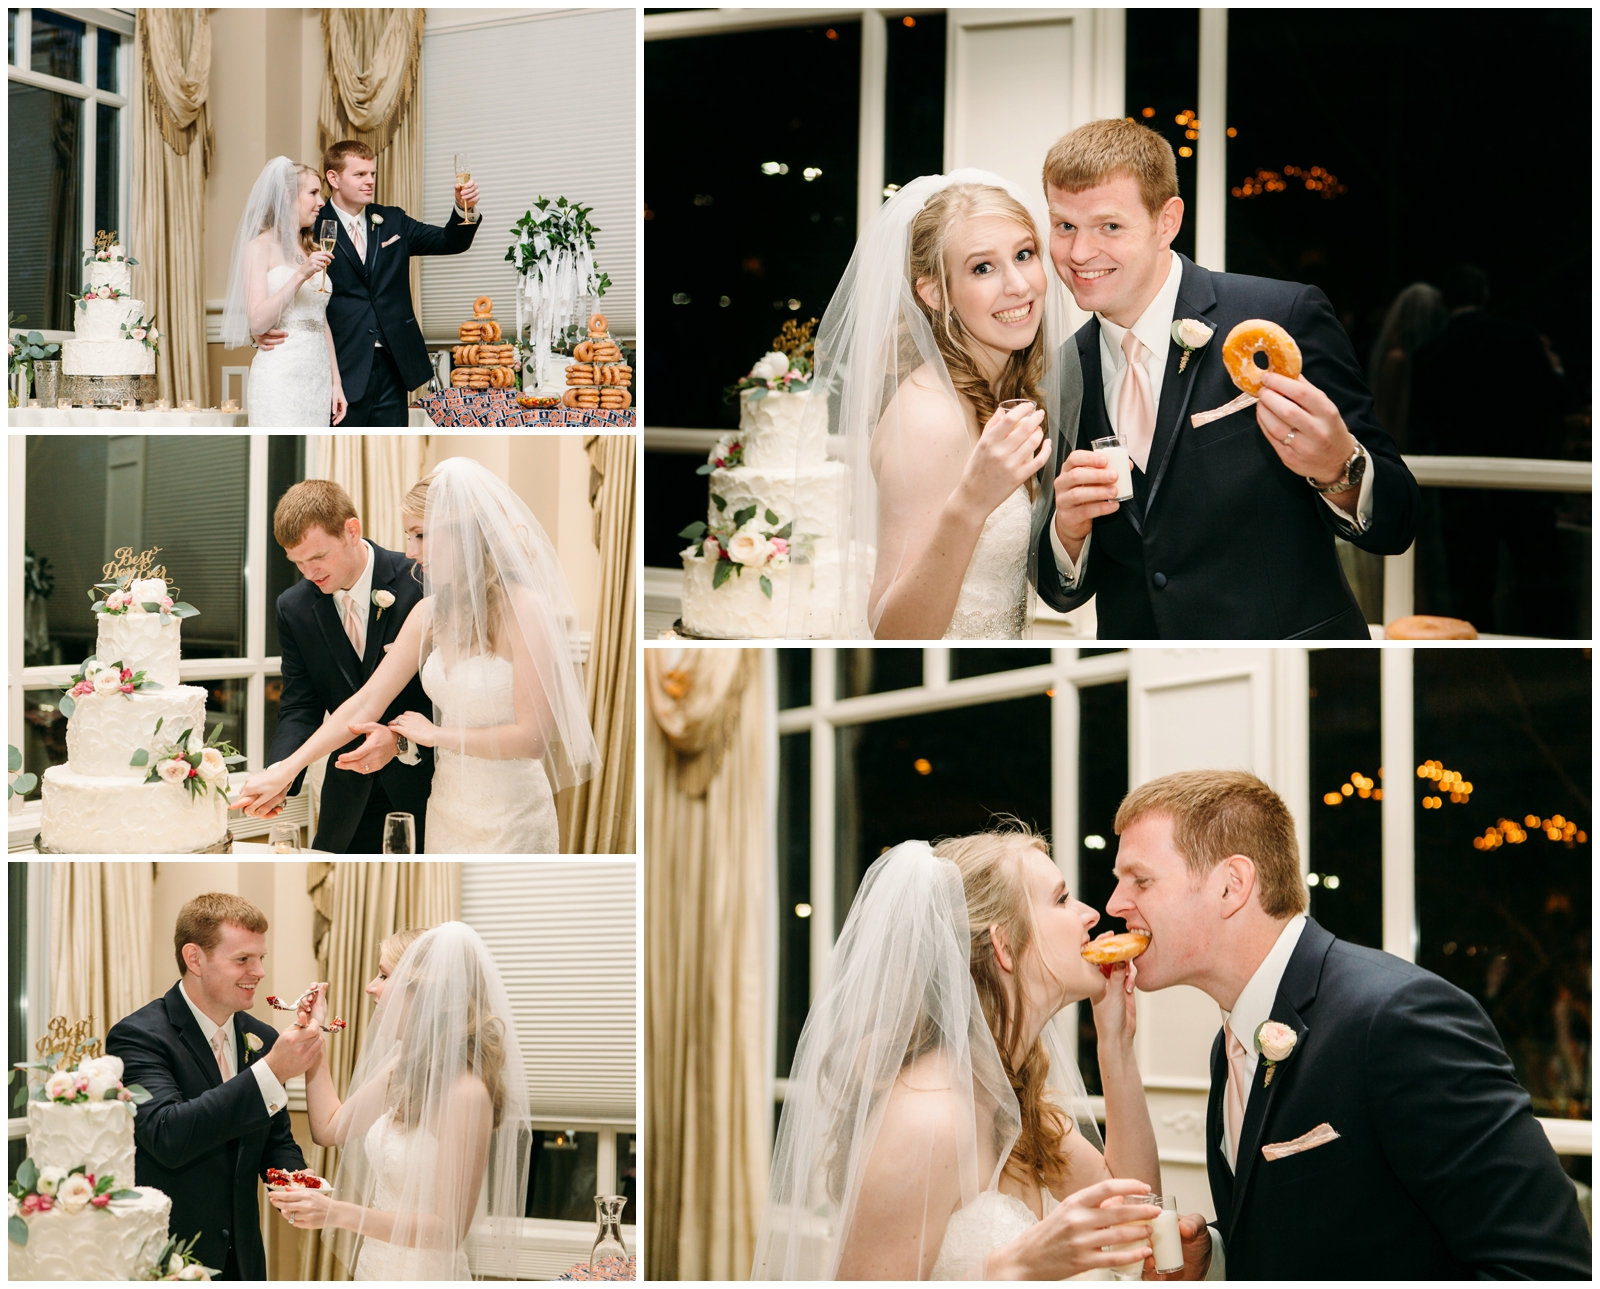 Morgan & Kyle_RoswellWedding_ArdentStory_0036